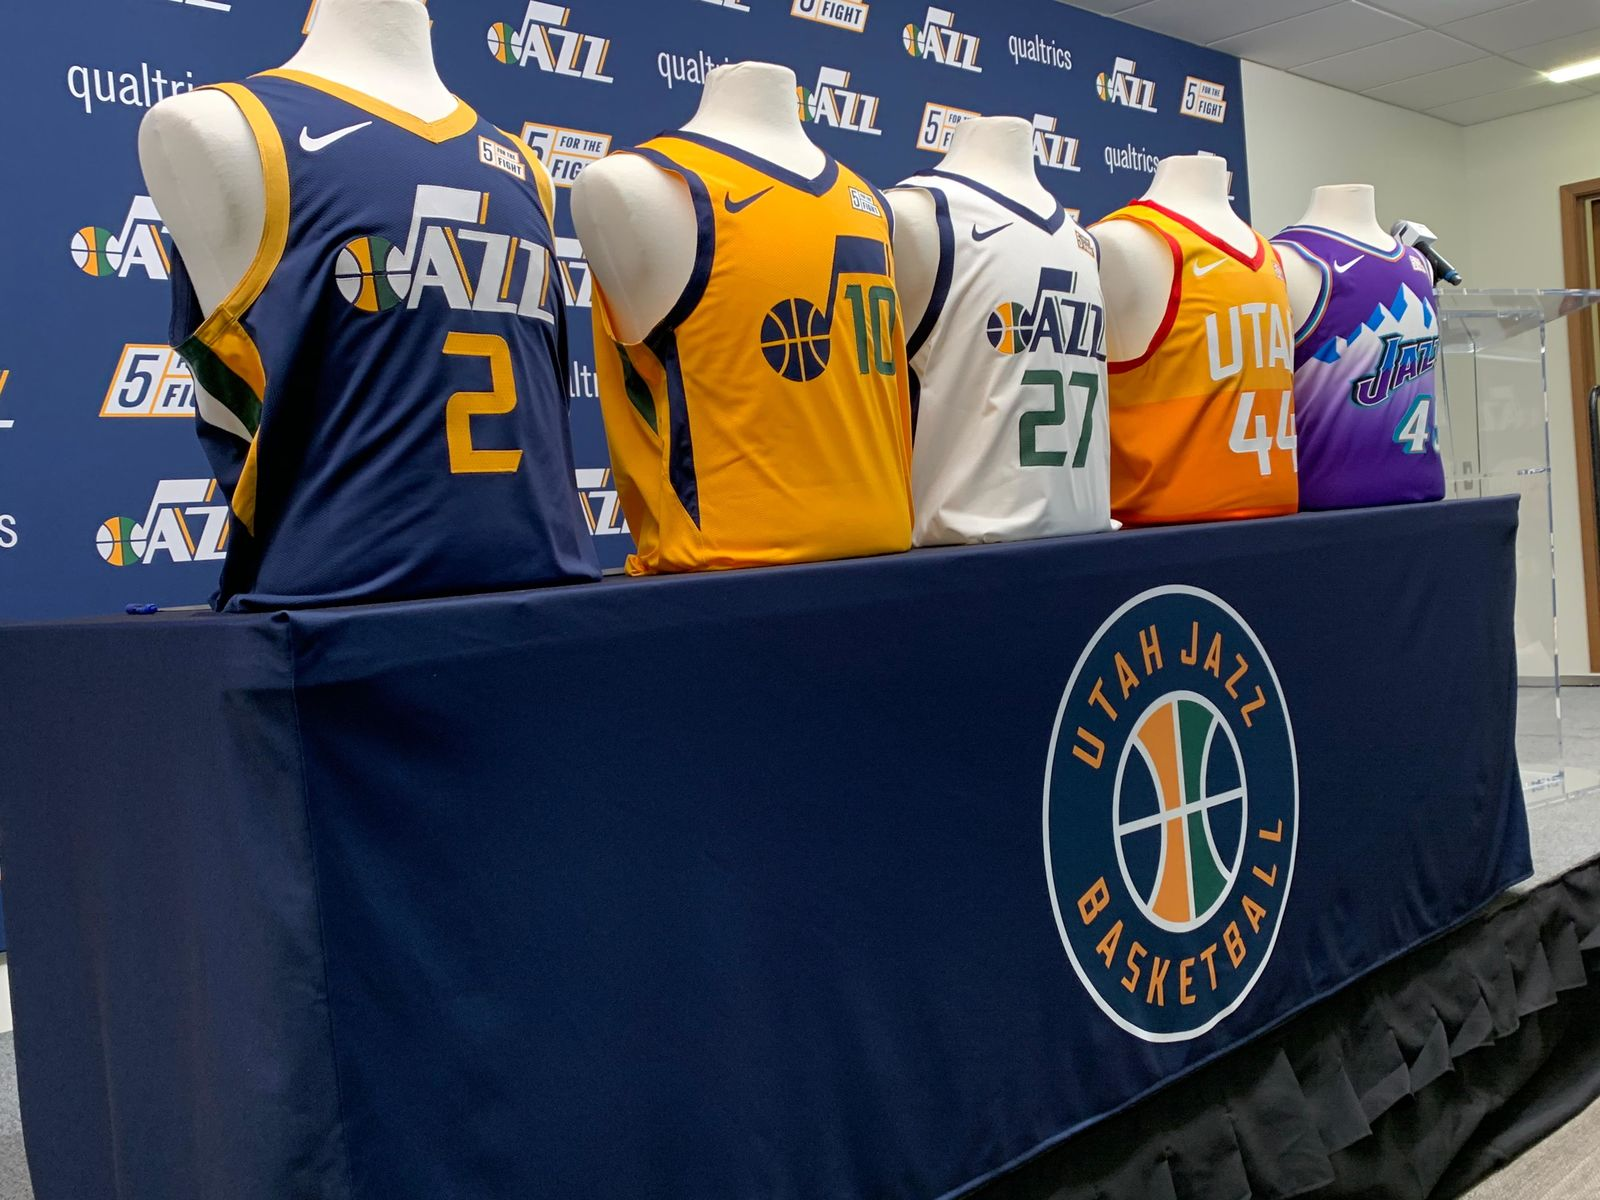 Five Utah Jazz jerseys in honor of Five for the Fight. (Photo: Adam Forgie, KUTV)<p></p>